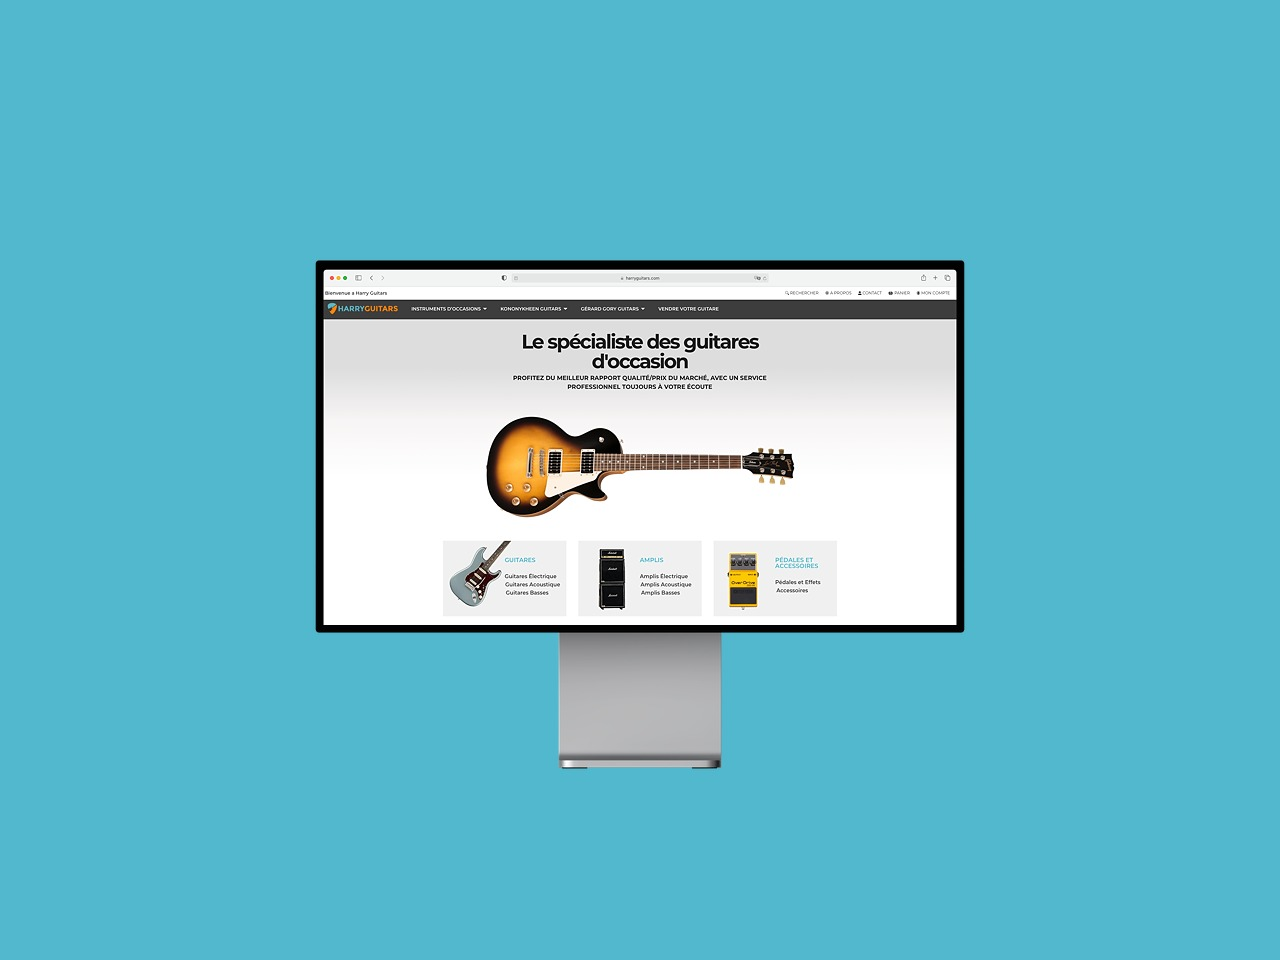 Wordpress, WooCommerce shop and custom designed logo - Harry Guitars now has a site to be proud of.